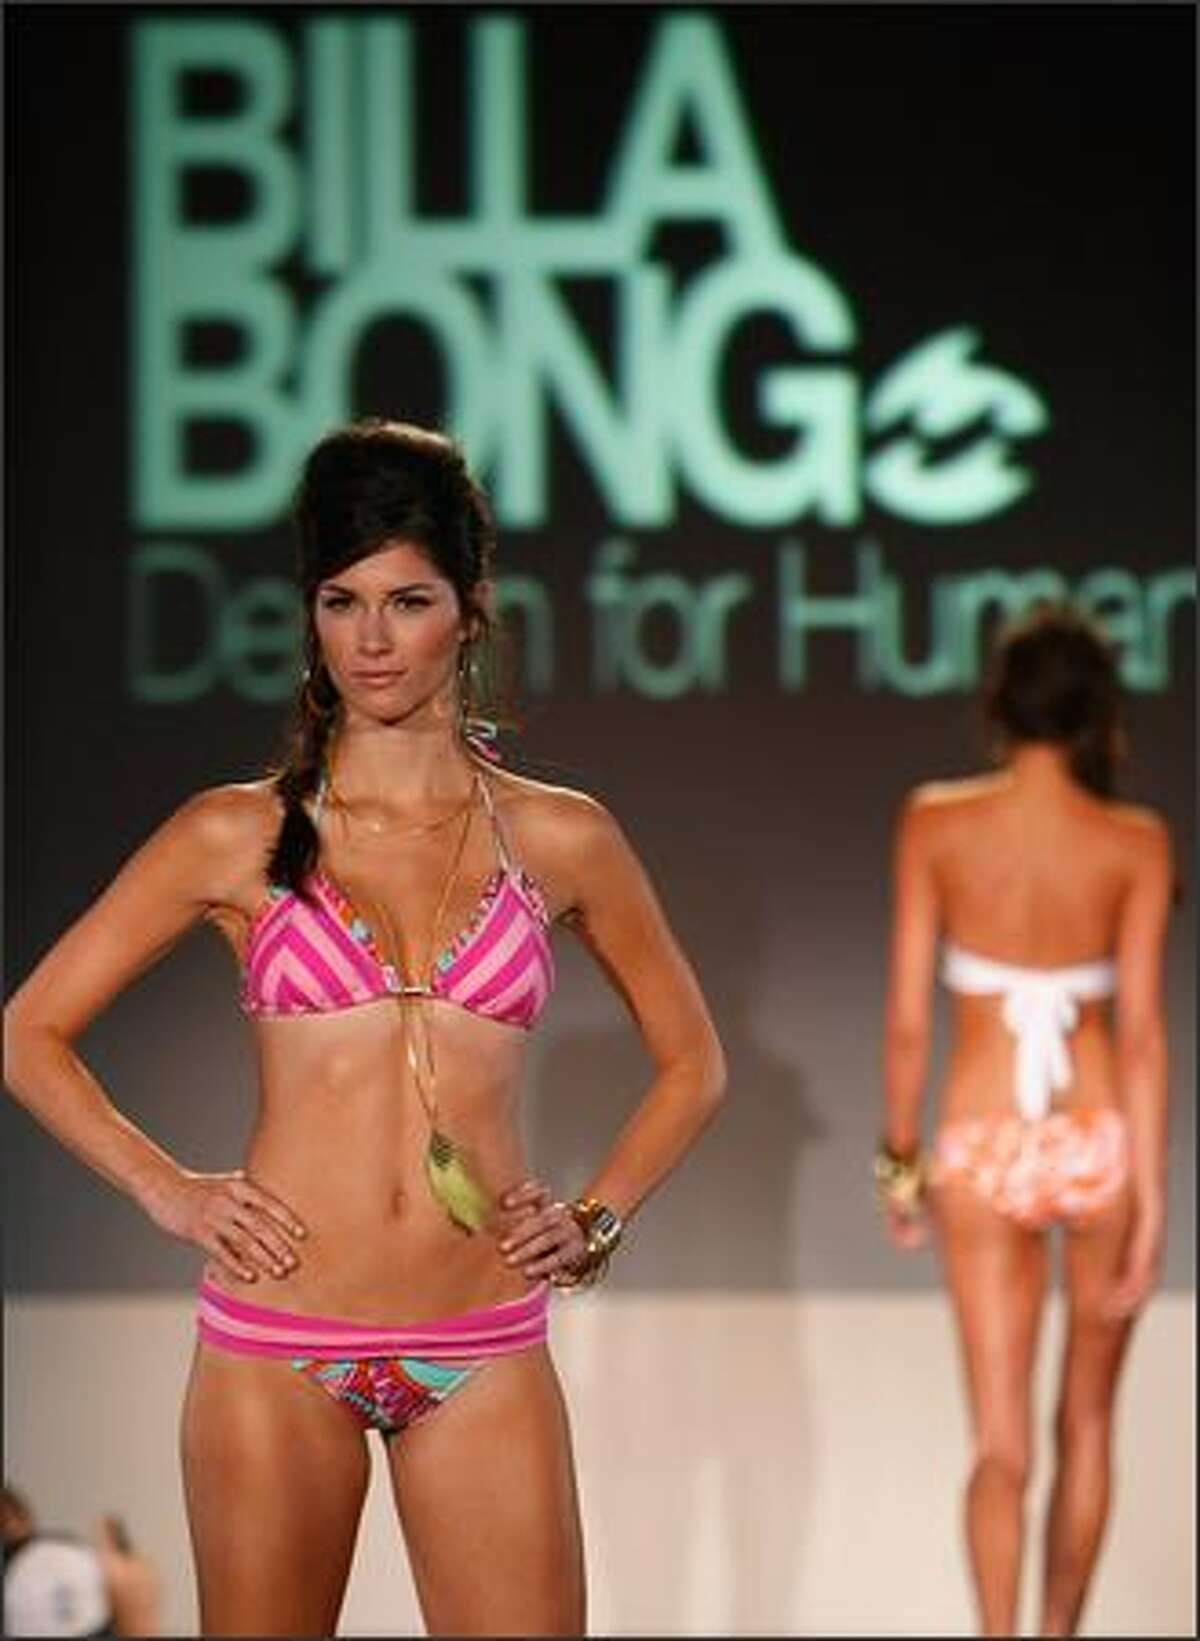 A model walks the runway of Billabong's Second Annual Design for Humanity benefitting The Surfrider Foundation at Avalon on Wednesday in Hollywood, Calif.